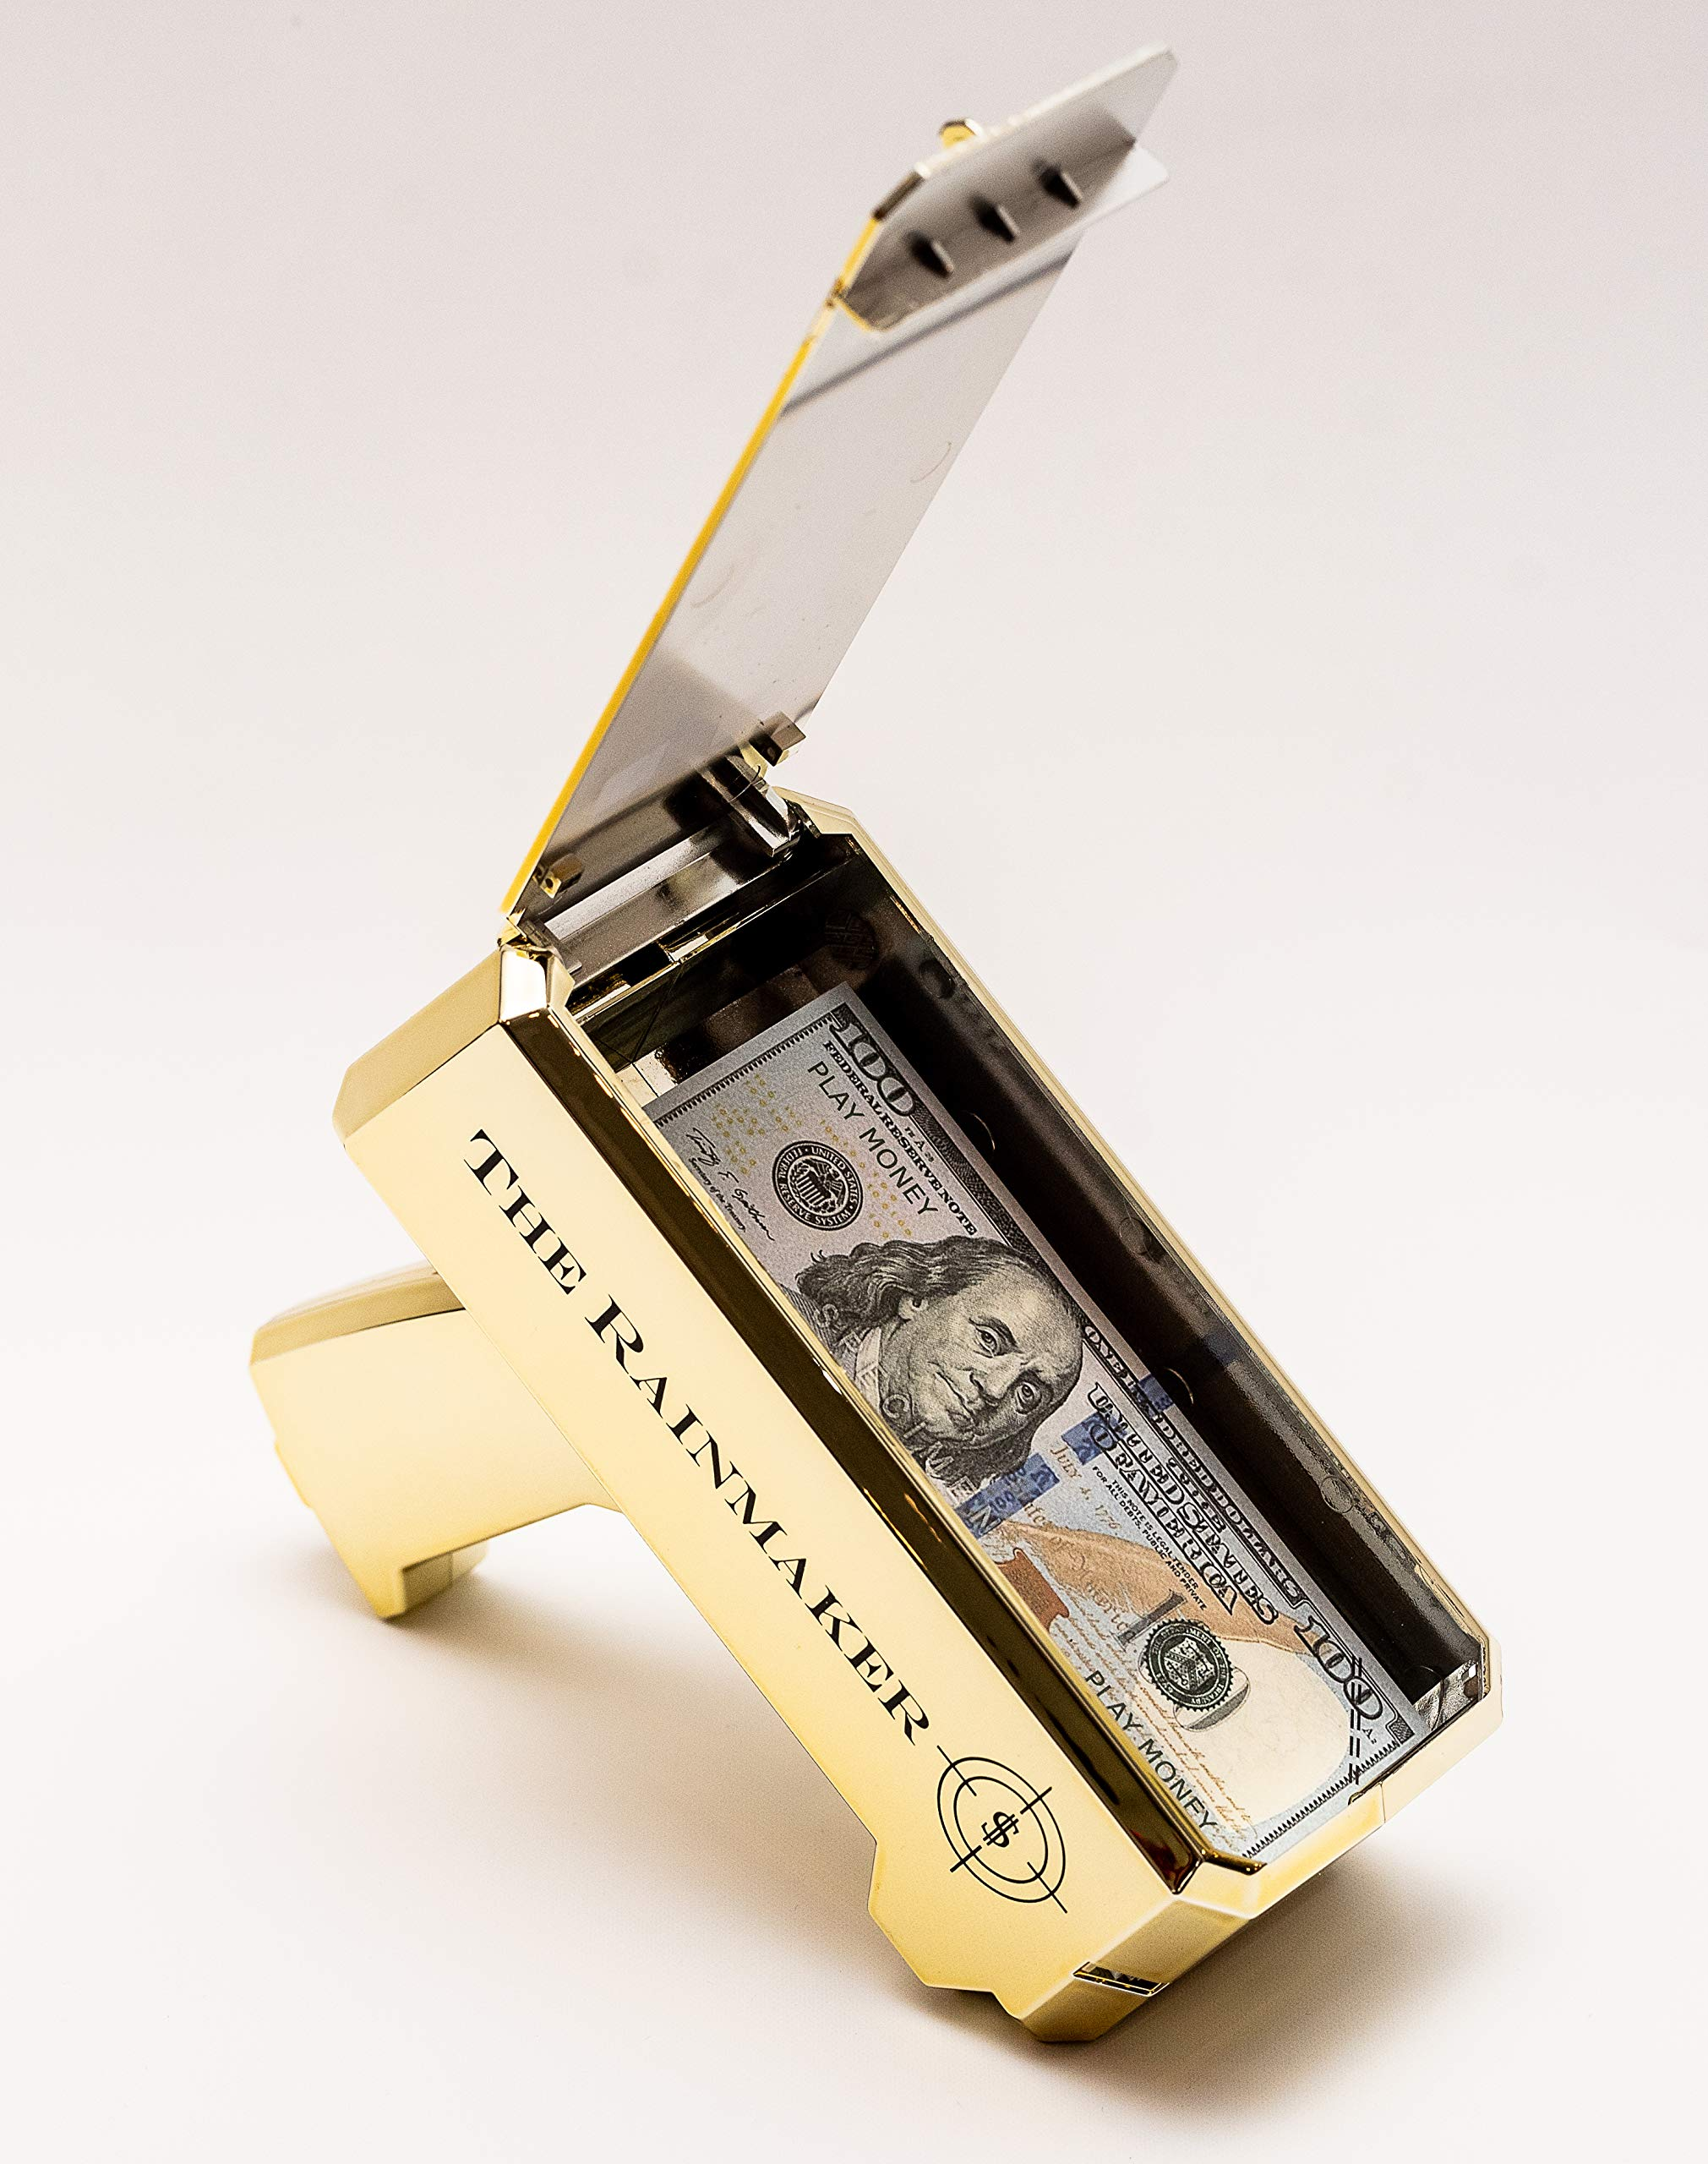 All Out Solutions The Rainmaker Money Gun | $10,000 Play Money | Money Looks Real! | Metallic Gold | Impress Your Friends with This Fun Party Toy | Shoot Cash and Make It Rain by All Out Solutions (Image #8)